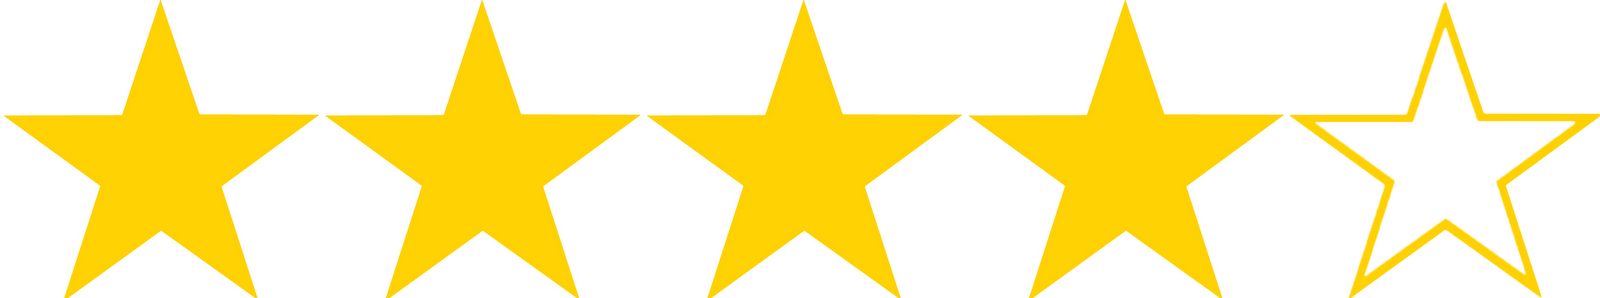 how to make a star rating in html